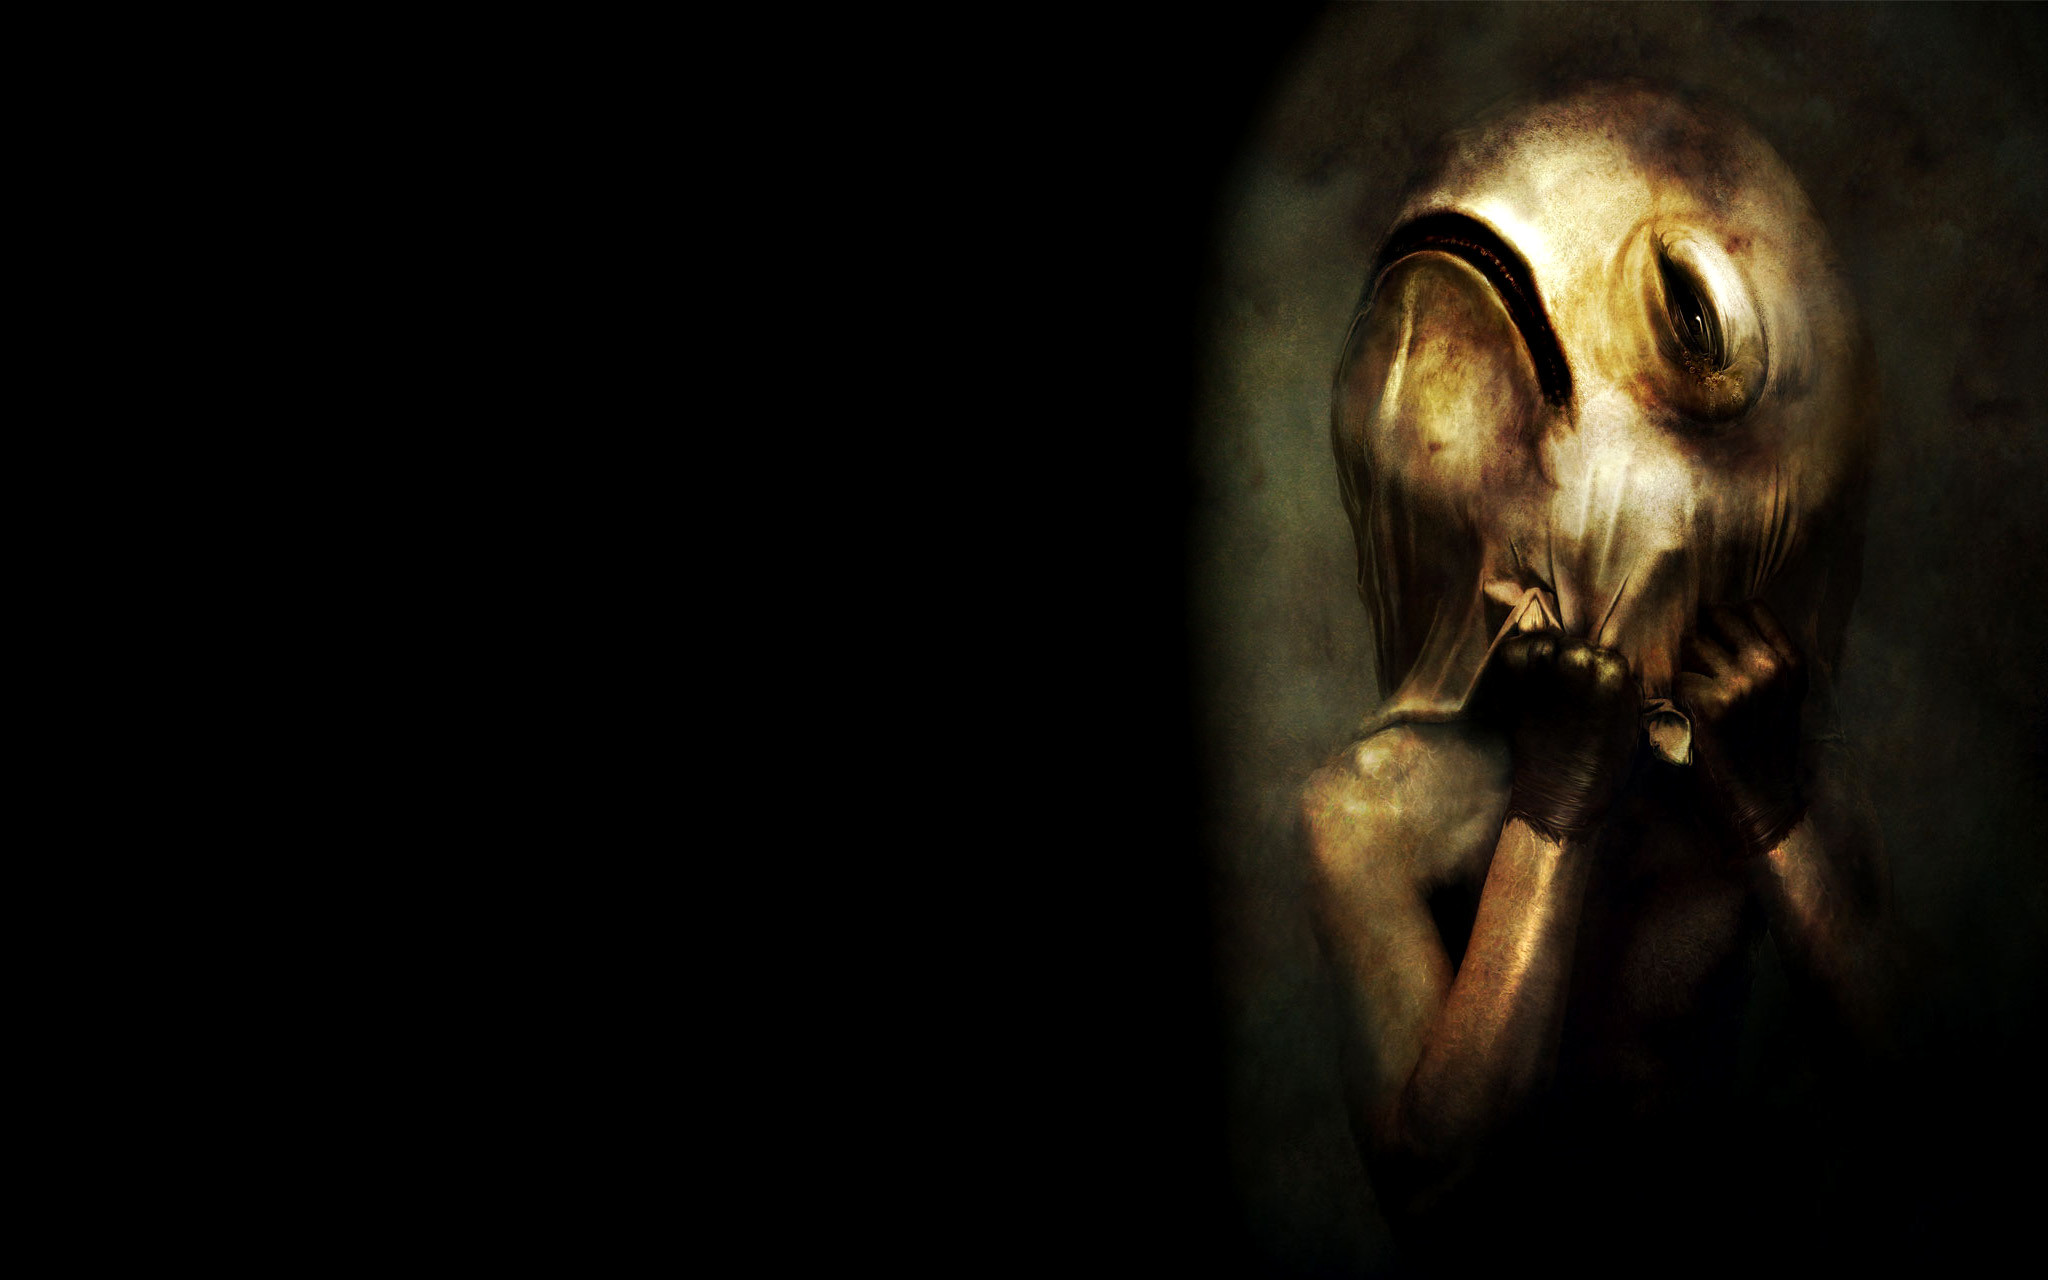 857 Creepy HD Wallpapers   Backgrounds – Wallpaper Abyss